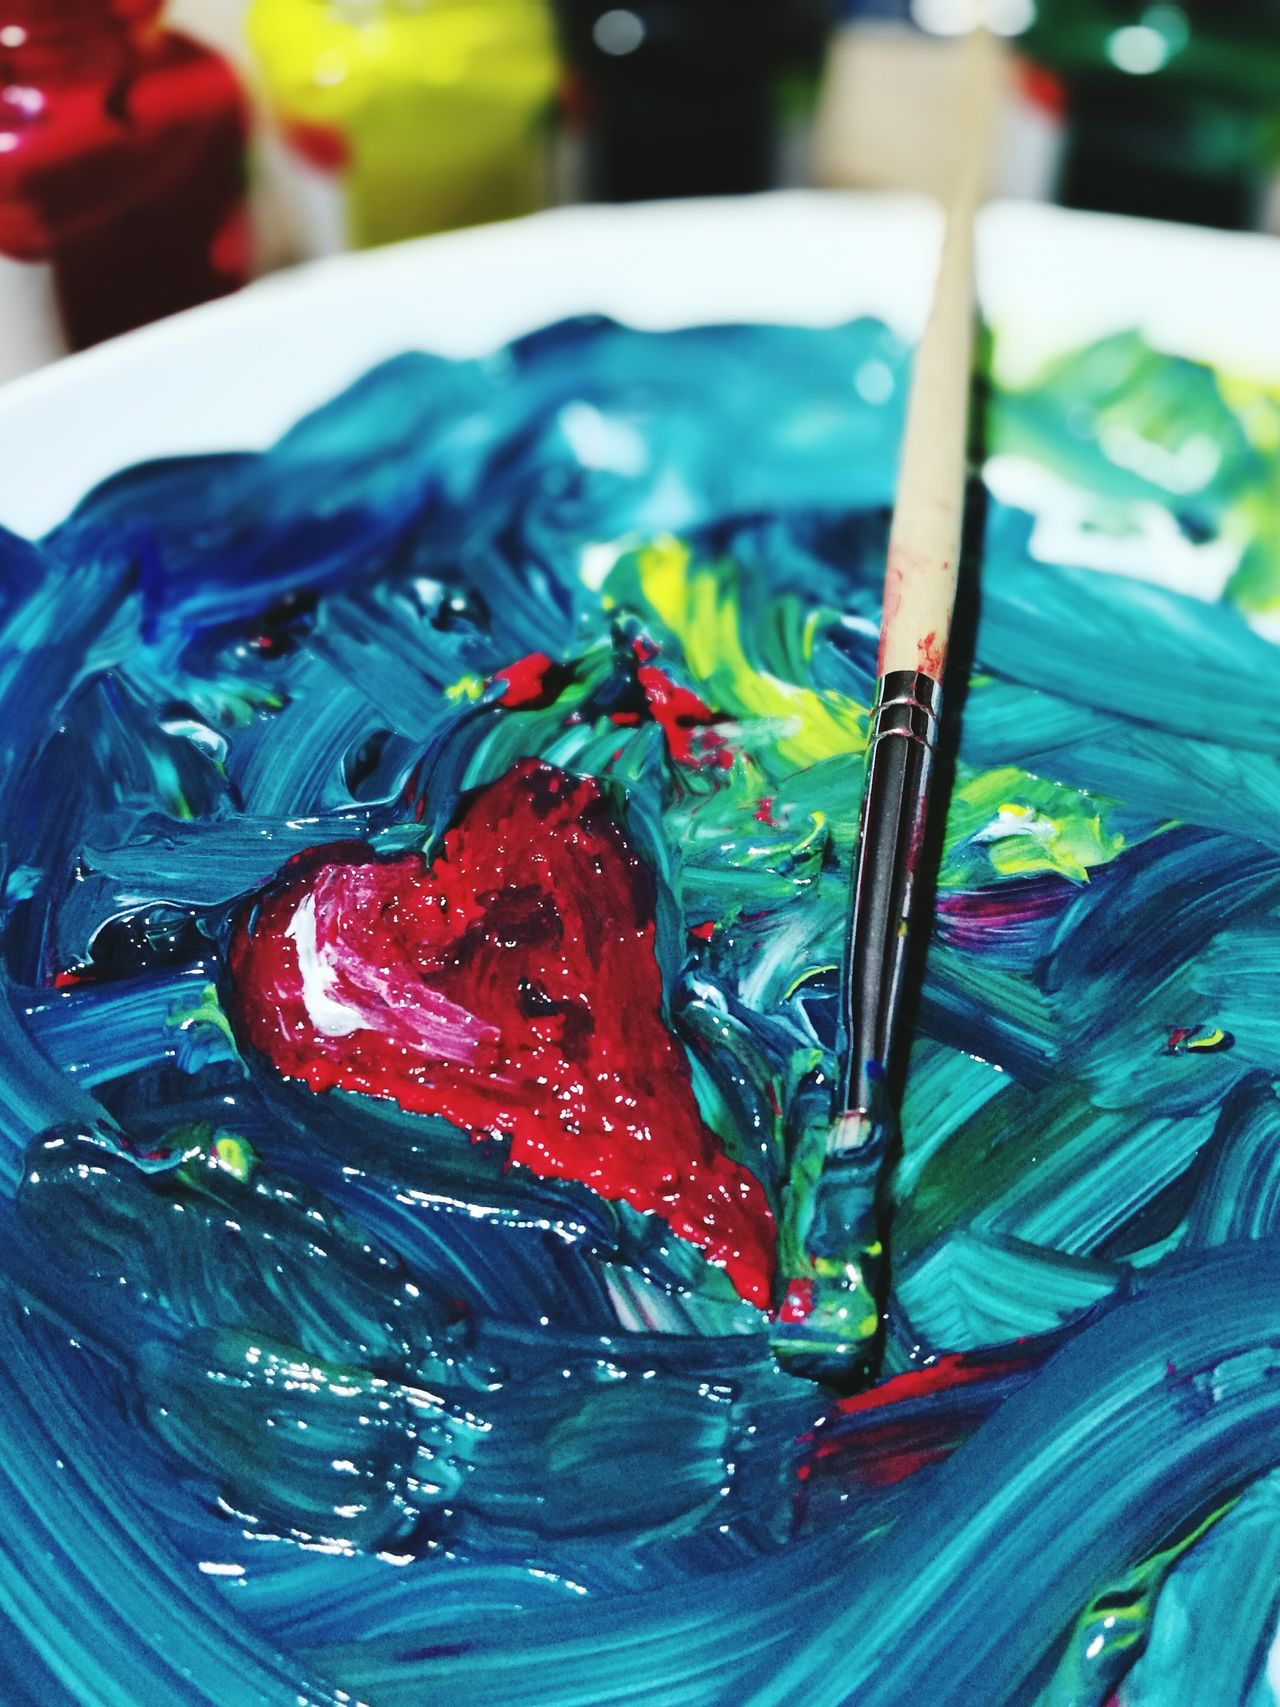 In spite of evry thing there is love Colores Colors Mix Love ♥ Always Love Paint Painting Paintbrush Art Art, Drawing, Creativity Art